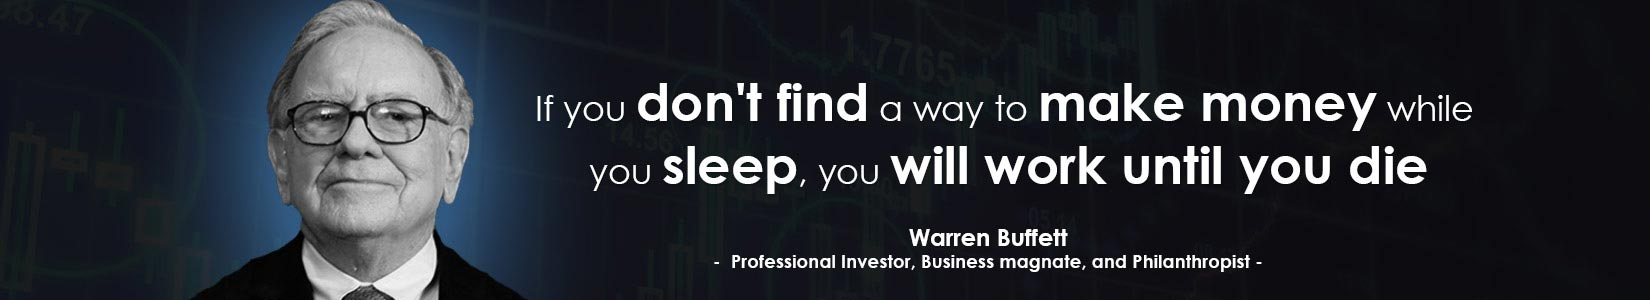 warren buffett trading motivational quote for Sinhala binary options traders in Sri Lanka